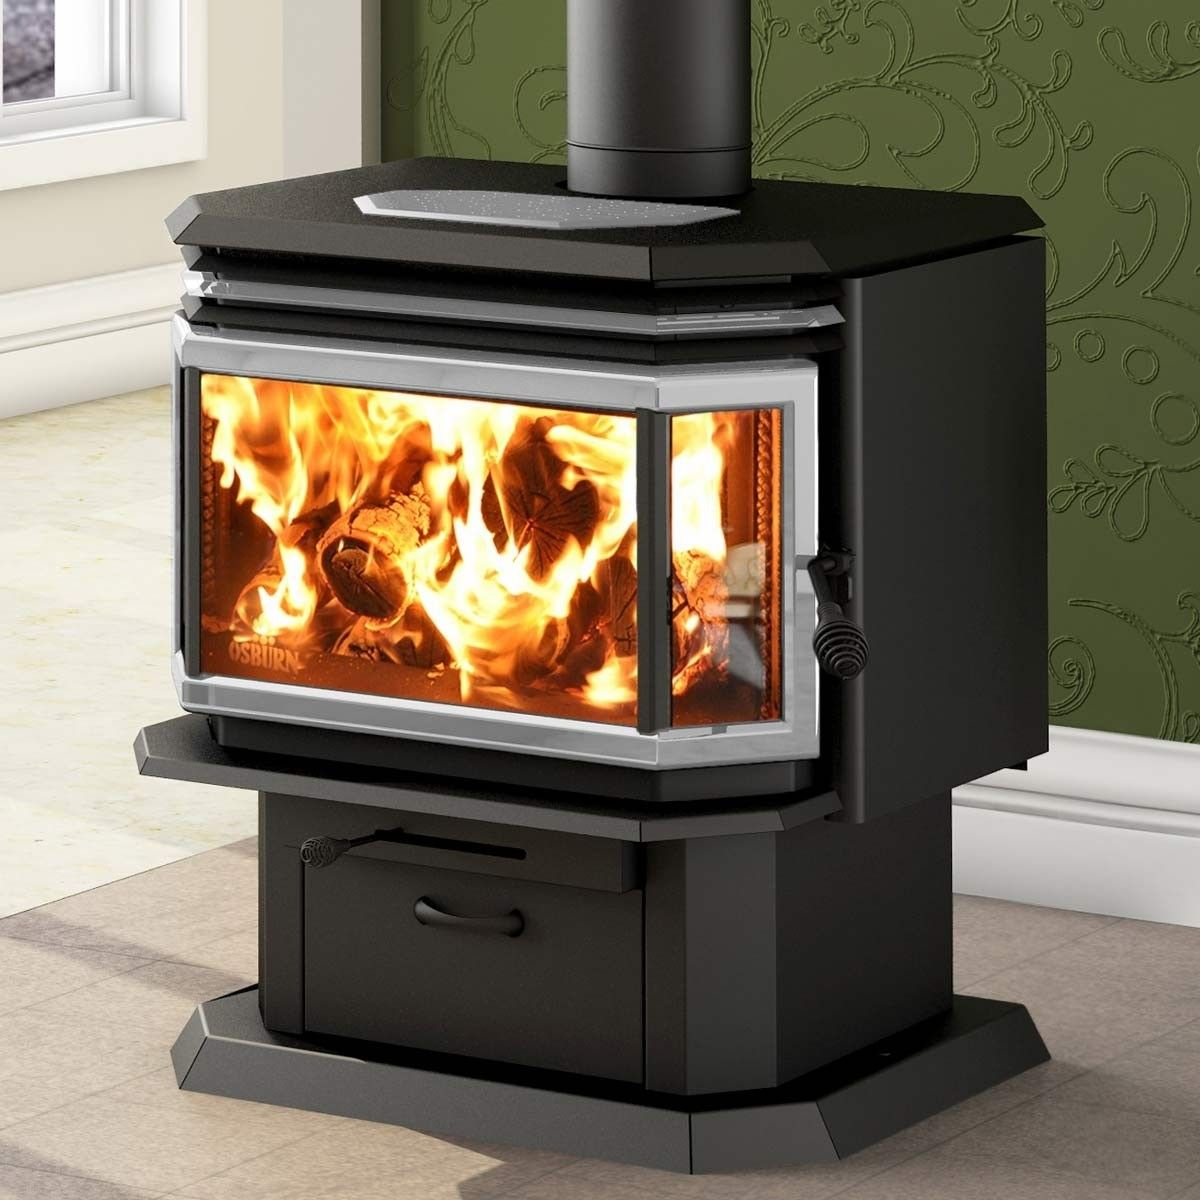 Stoves and Fireplaces Lovely Osburn 2200 Metallic Black Epa Wood Stove Ob In 2019